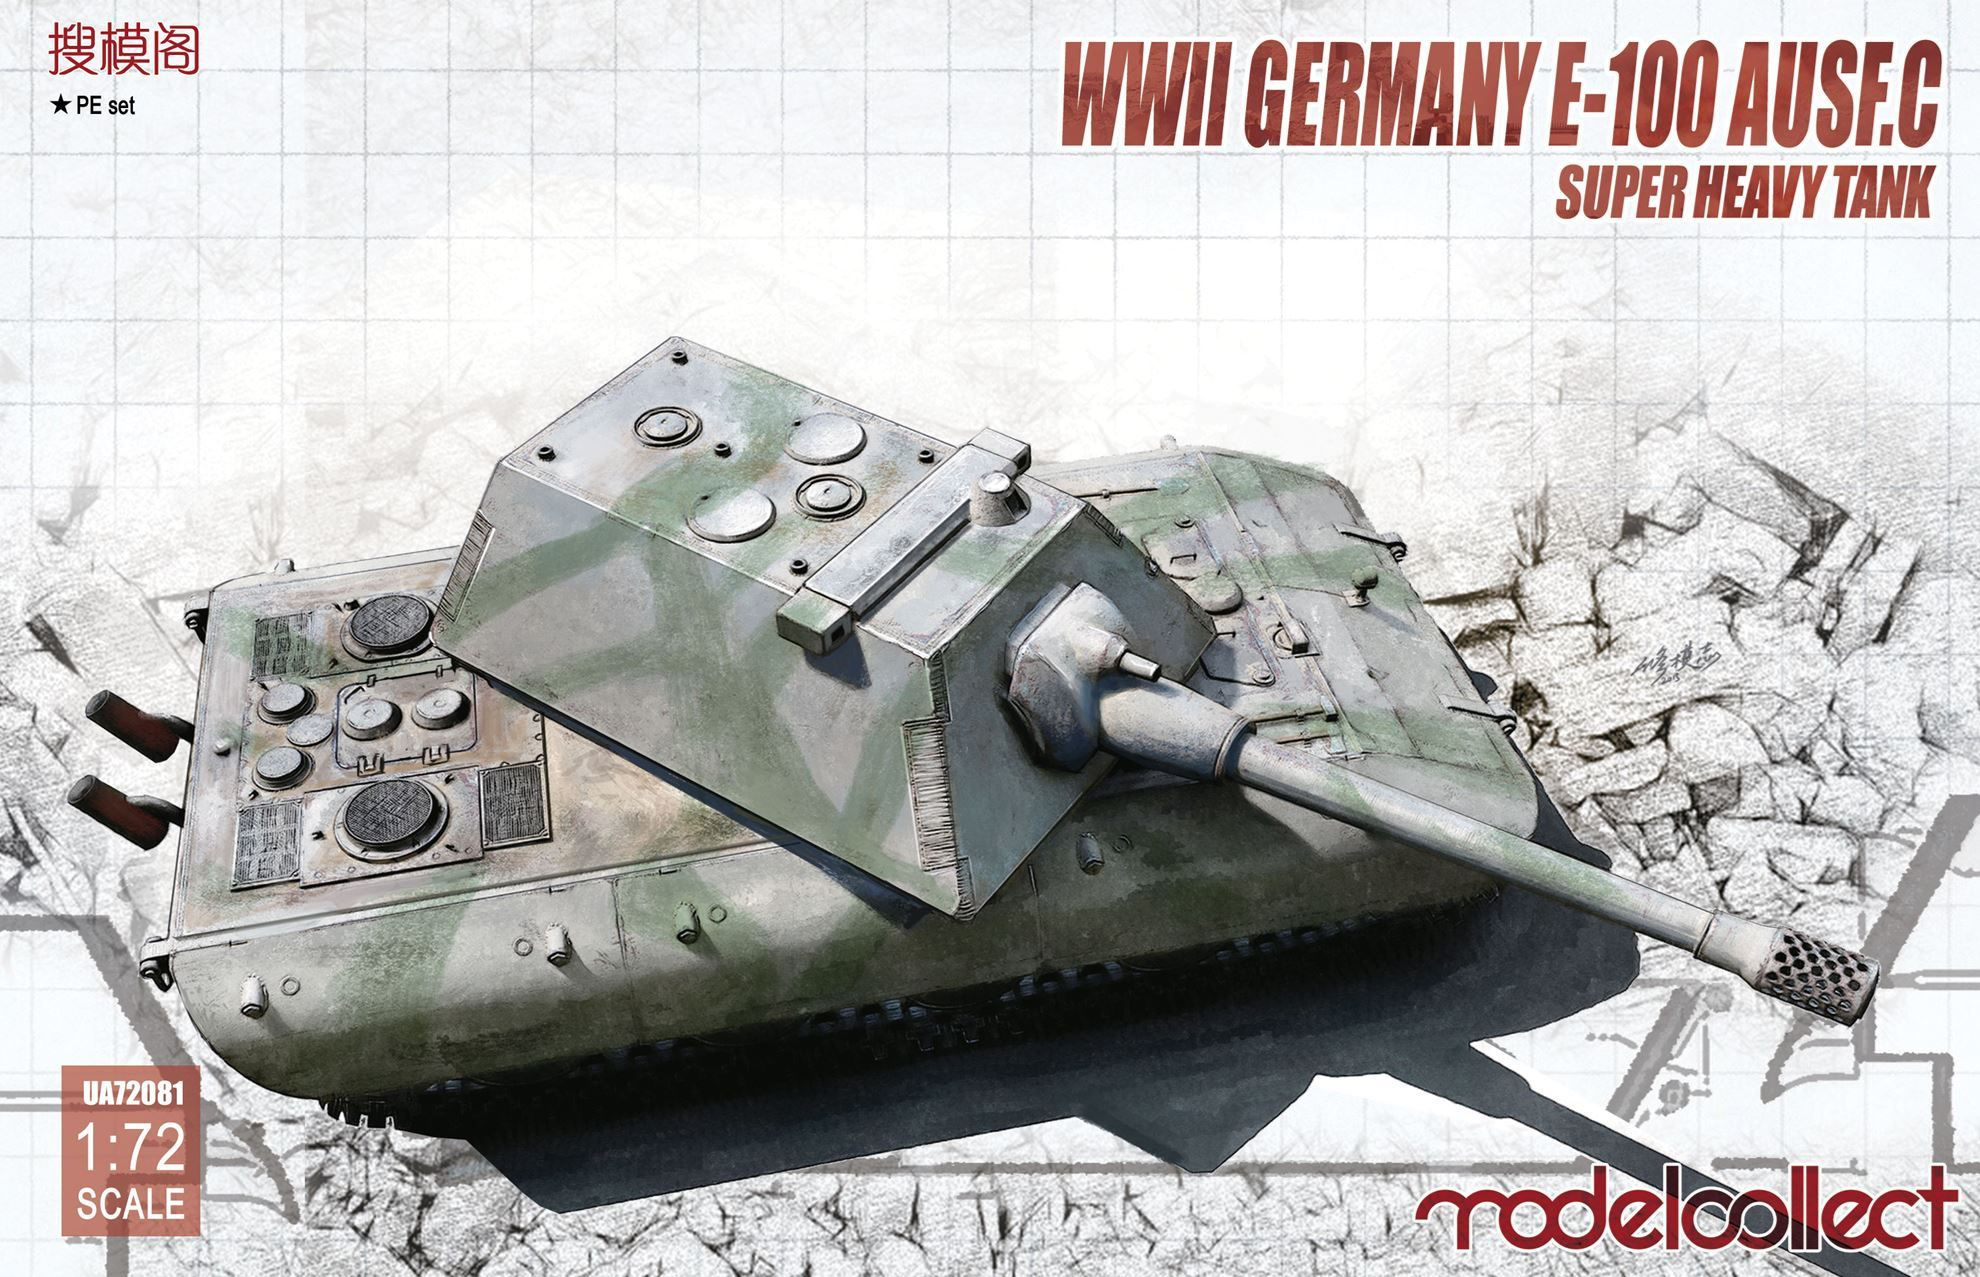 German E-100 Heavy Tank with Krupp turret